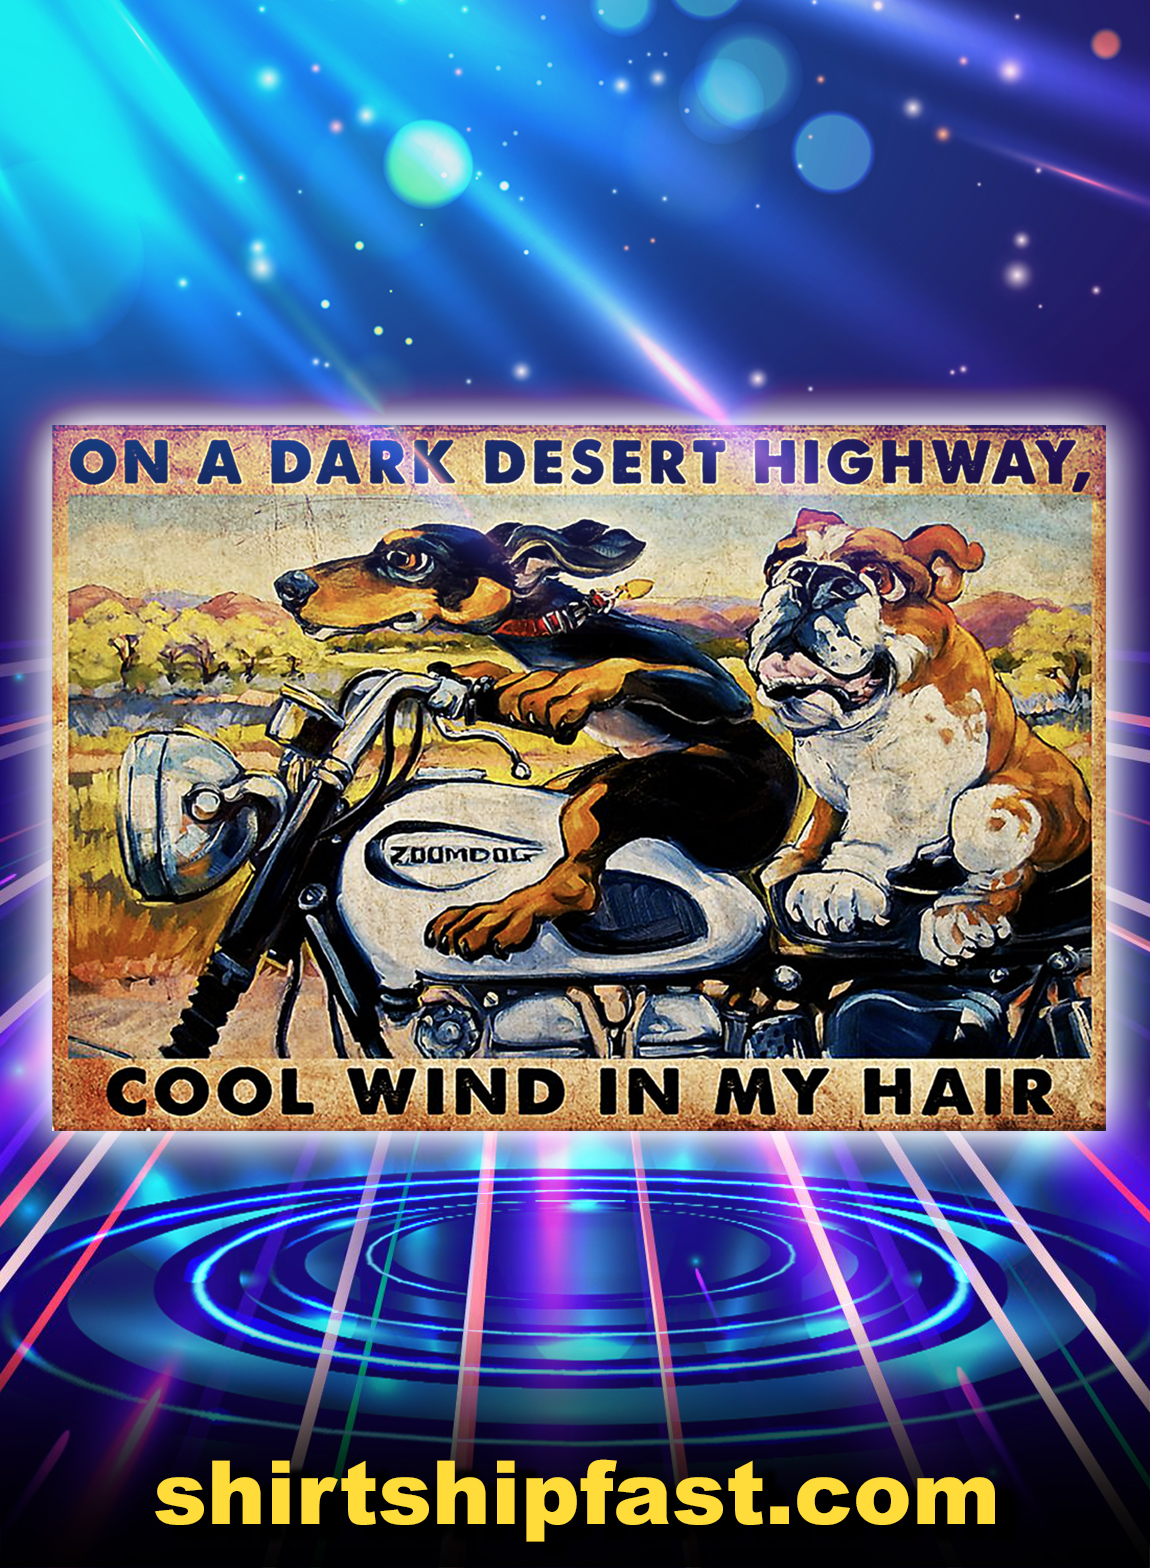 Motorcycle dachshund and bulldog on a dark desert highway cool wind in my hair poster - A3